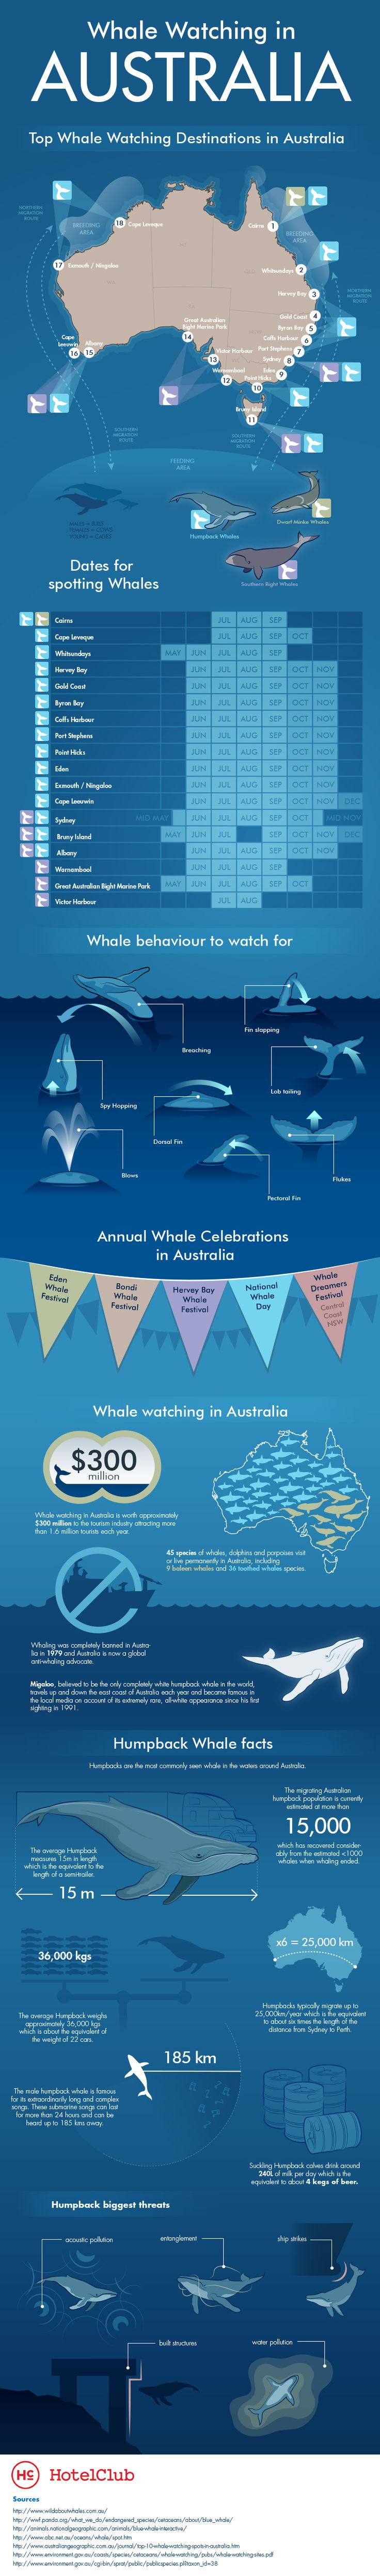 wedding packages western australia%0A Australia is considered to be one of the best places to see whales in the  world  The most common sighted whales is  humpbacks  However  there is  also the